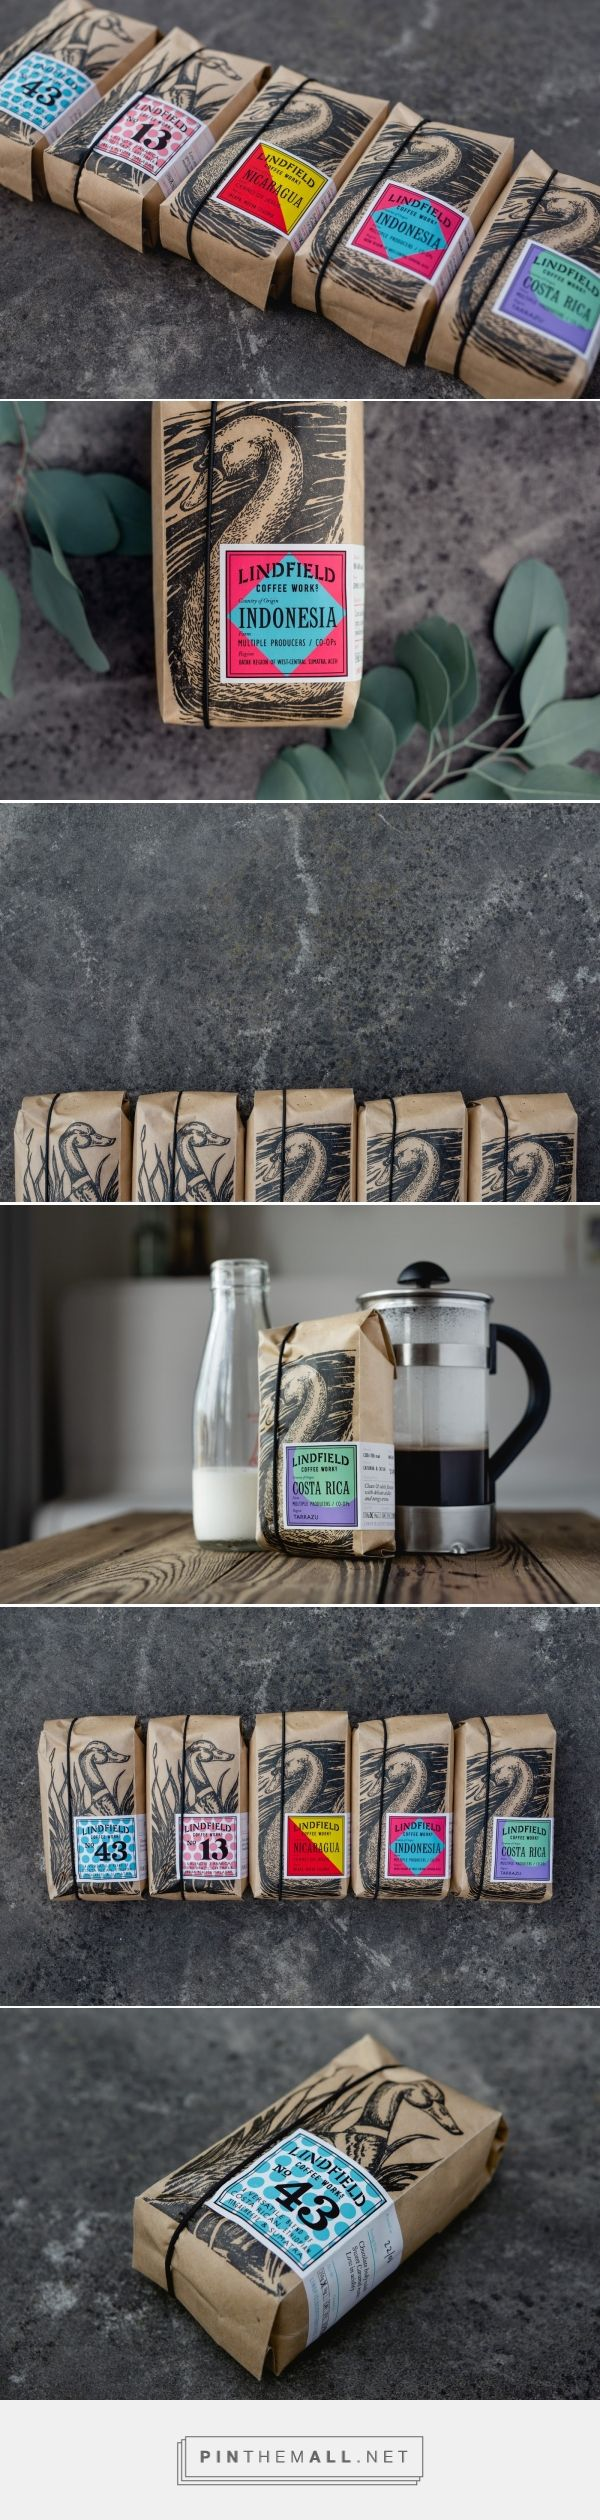 Lindfield Coffee Works packaging design by Studio Parr - http://www.packagingoftheworld.com/2016/11/lindfield-coffee-works.html